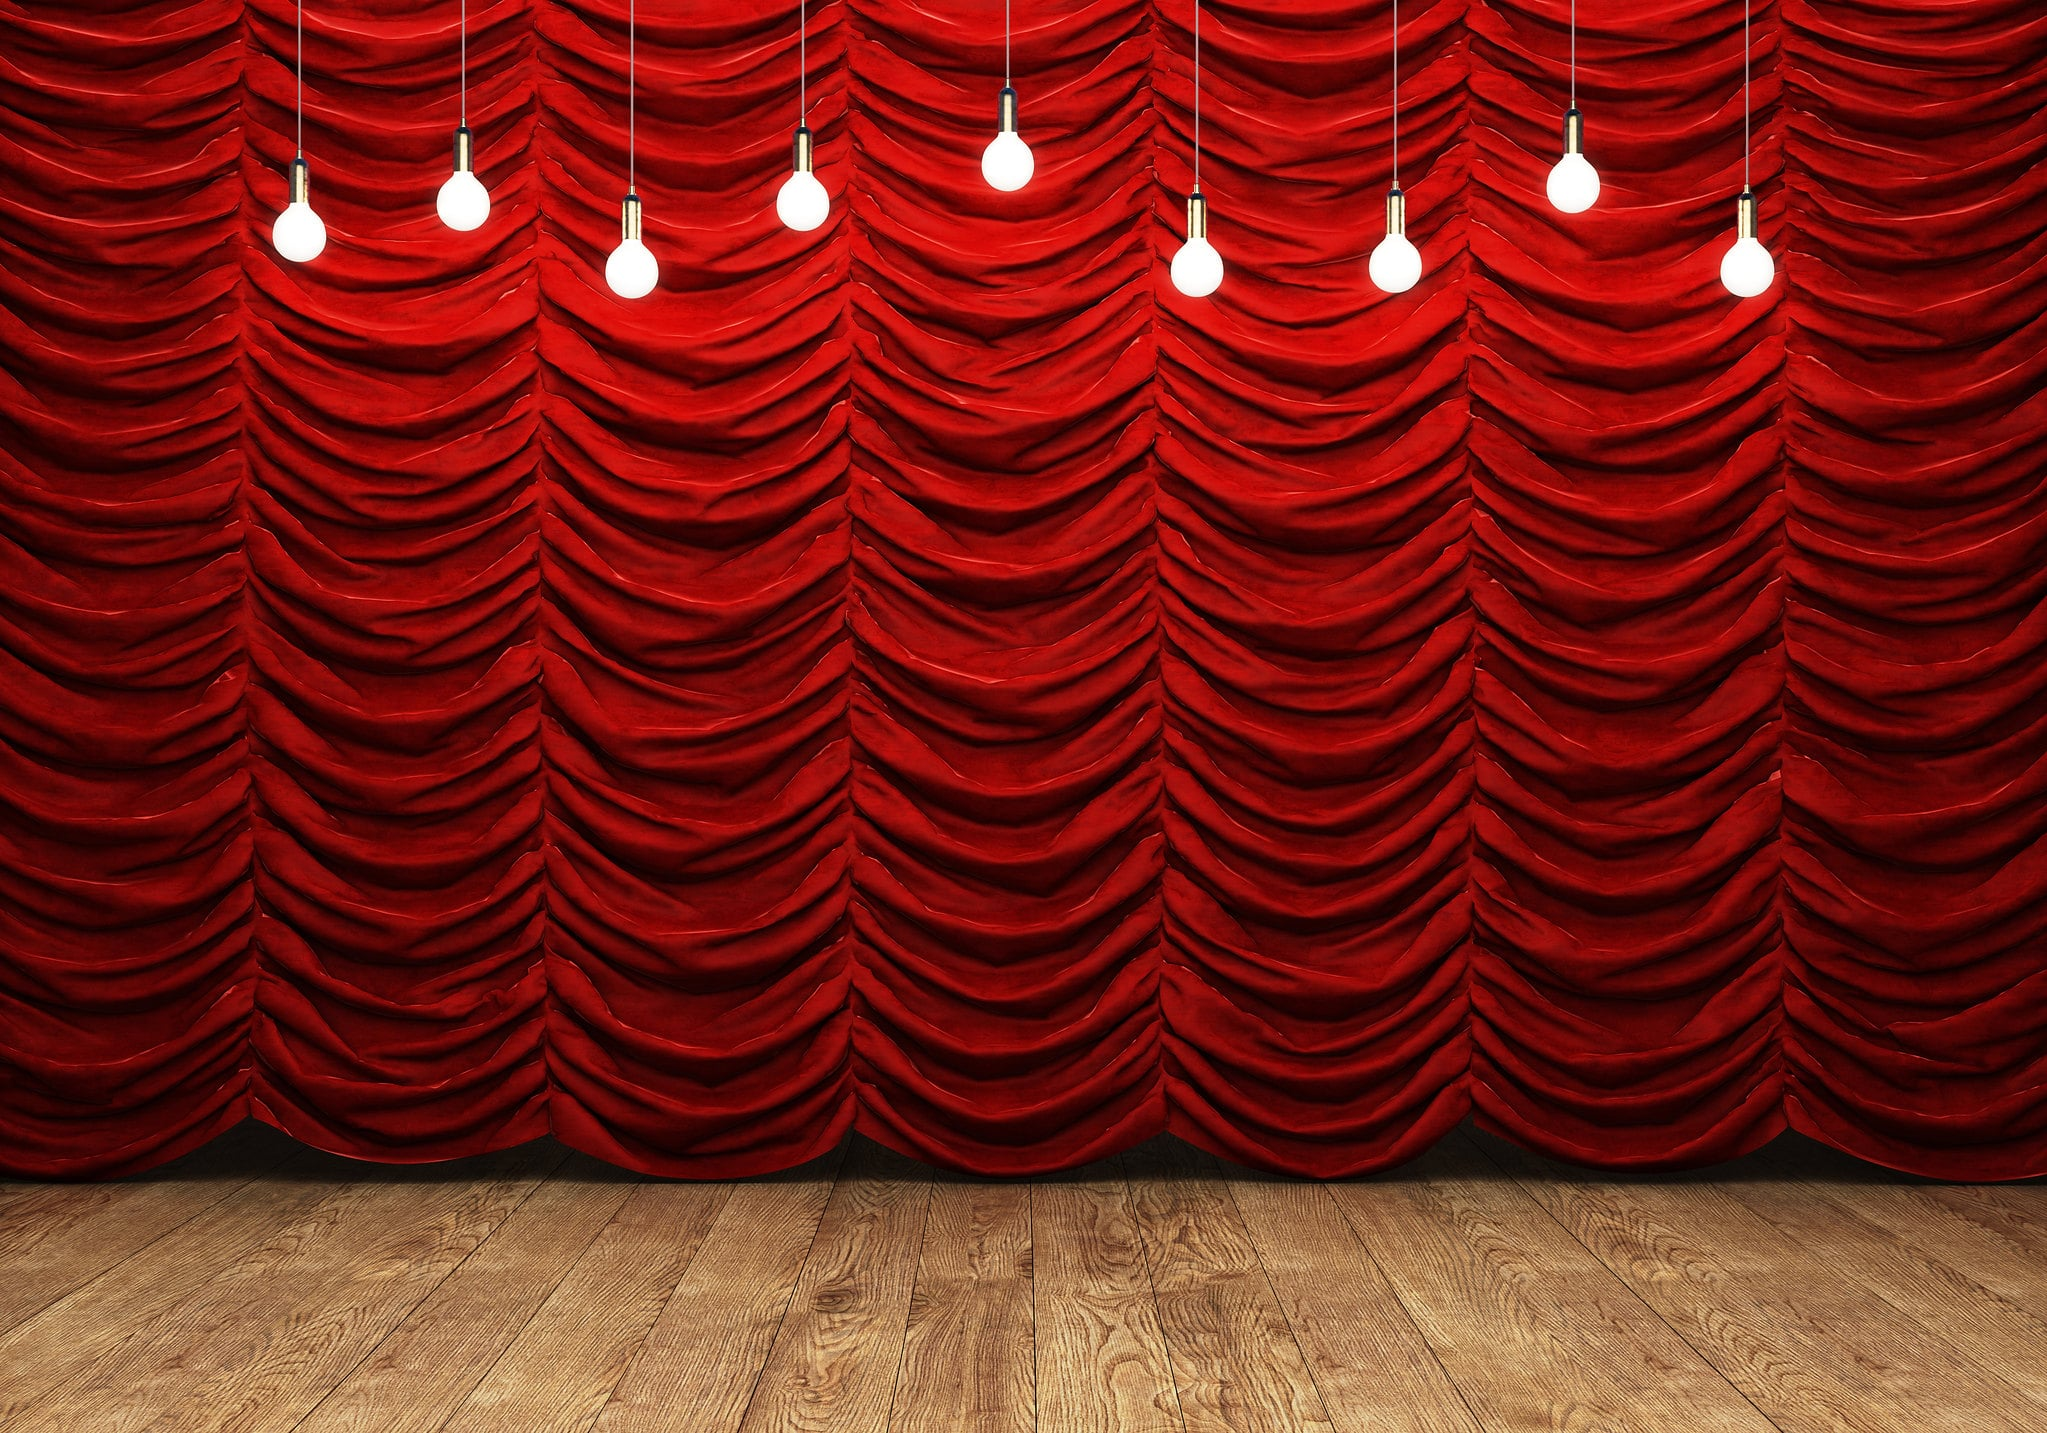 empty stage with red curtain behind it